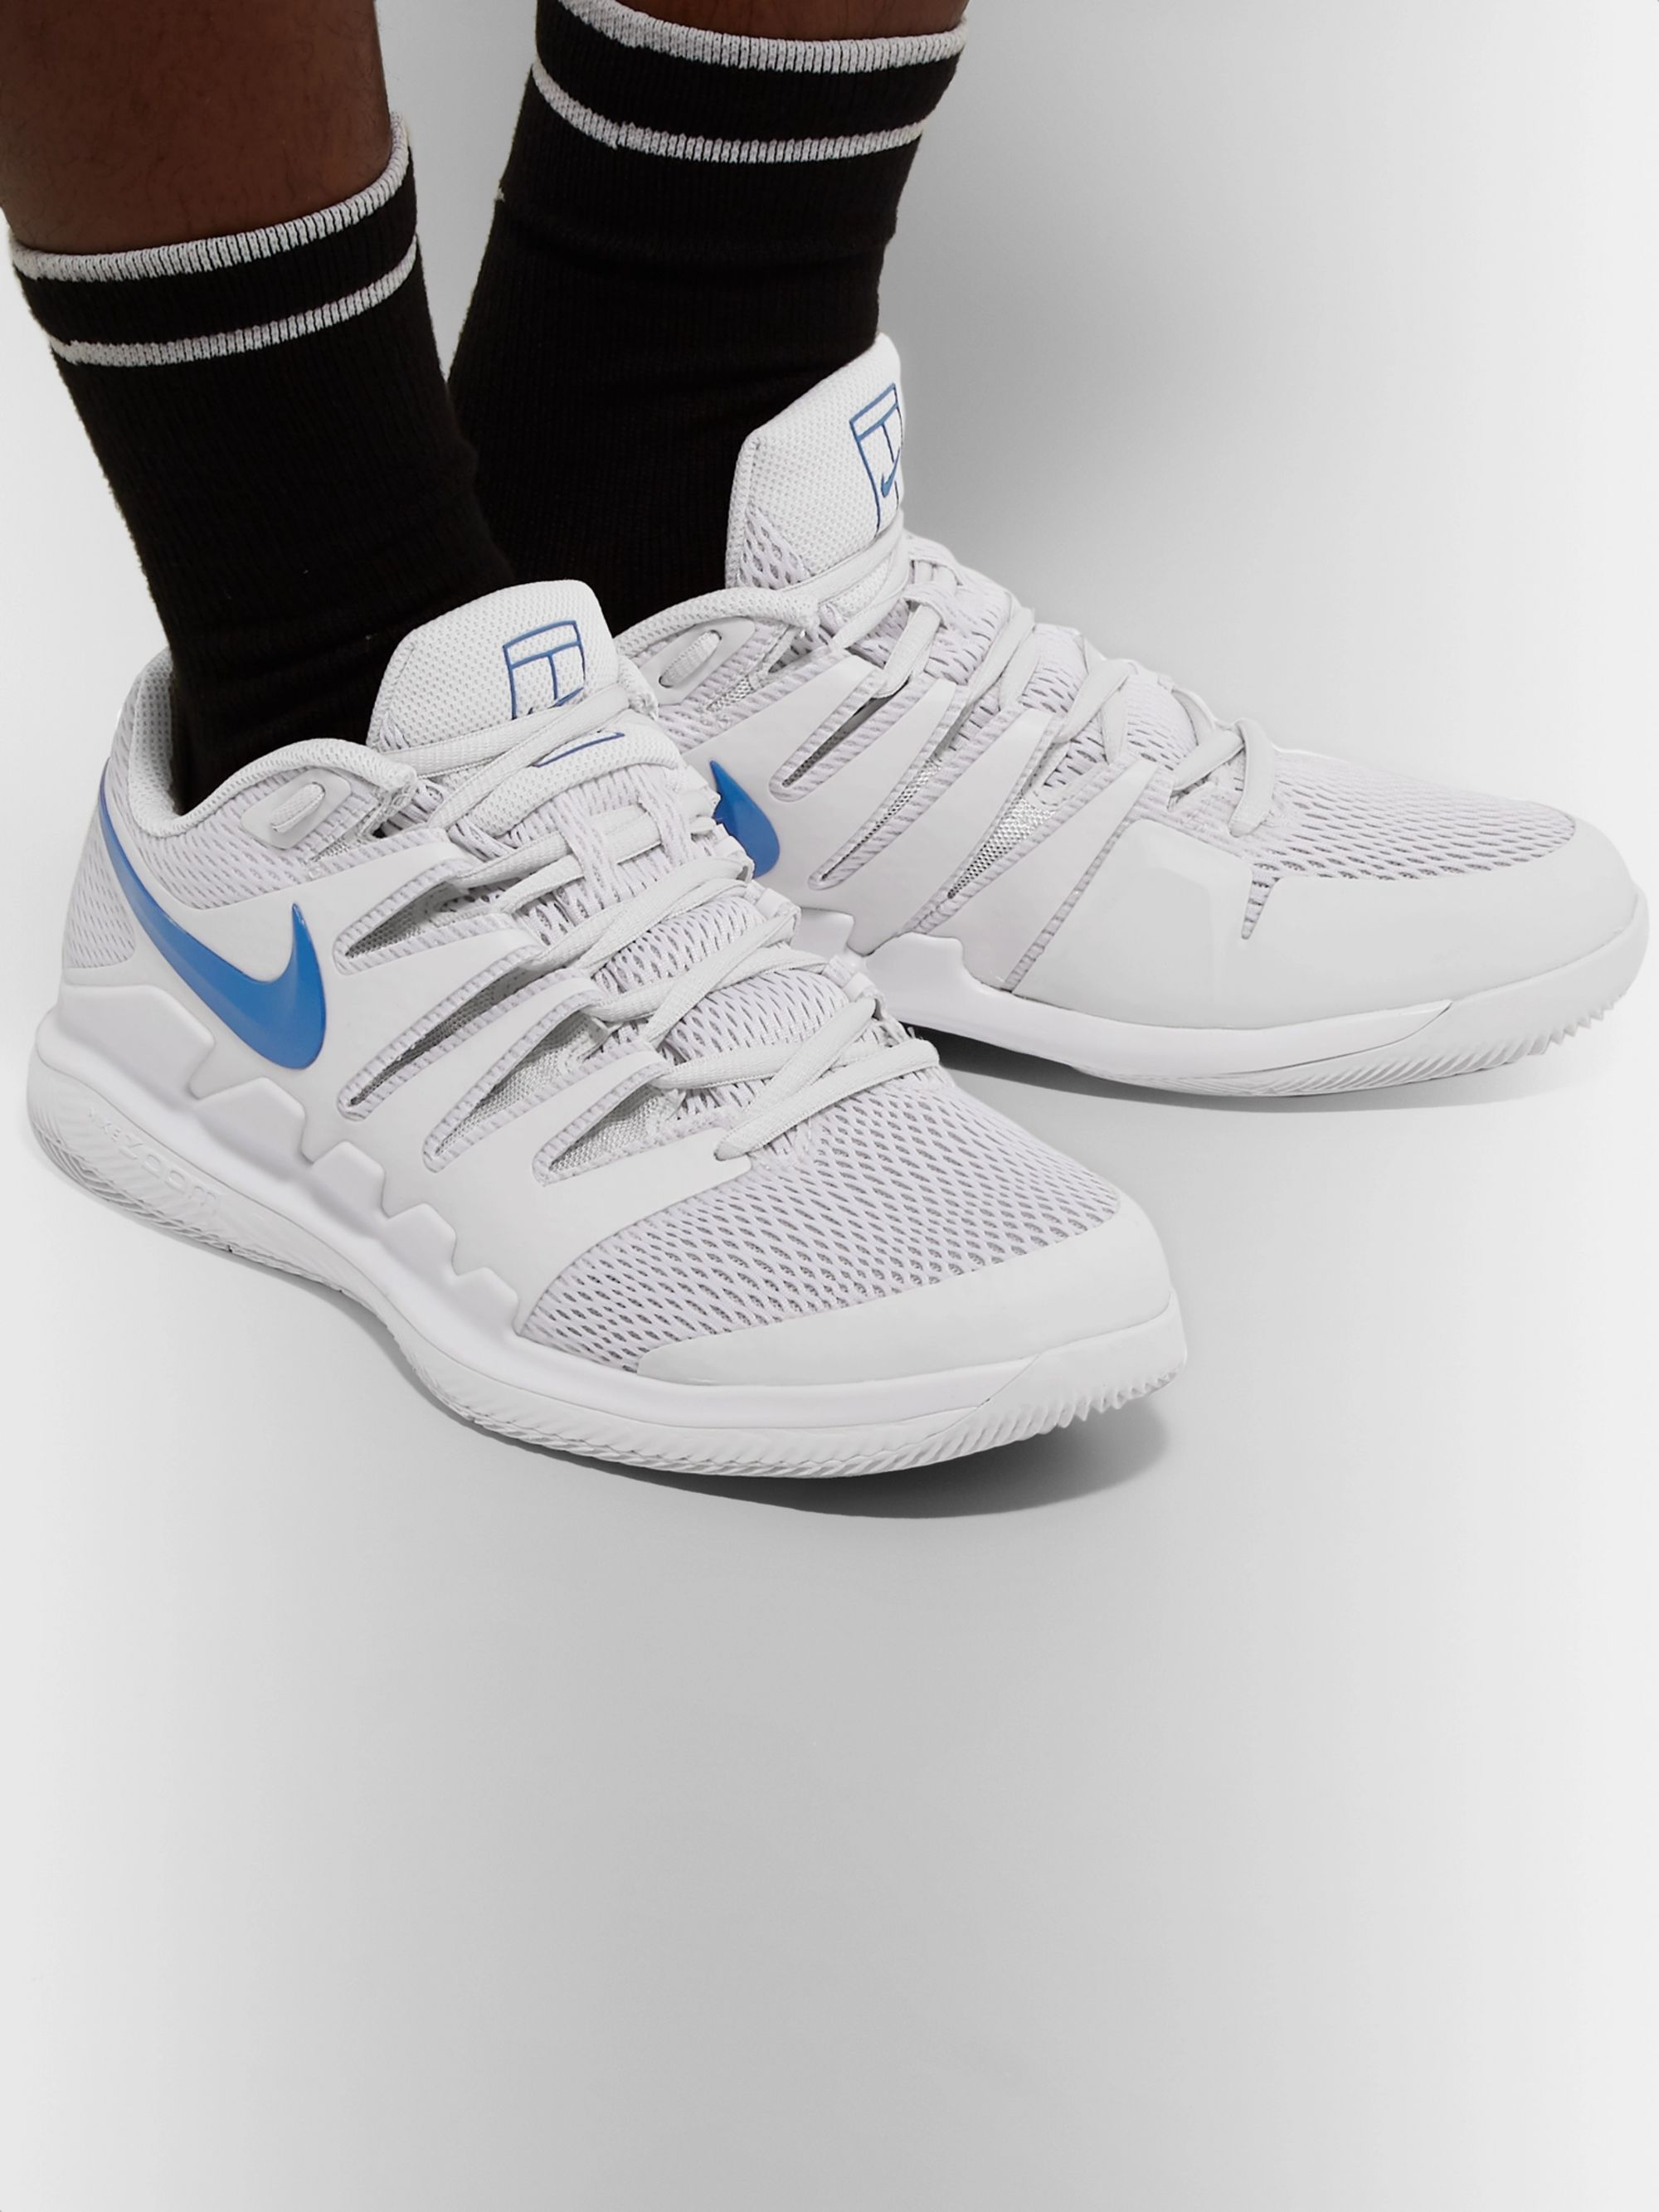 White Air Zoom Vapor X Rubber and Mesh Tennis Sneakers